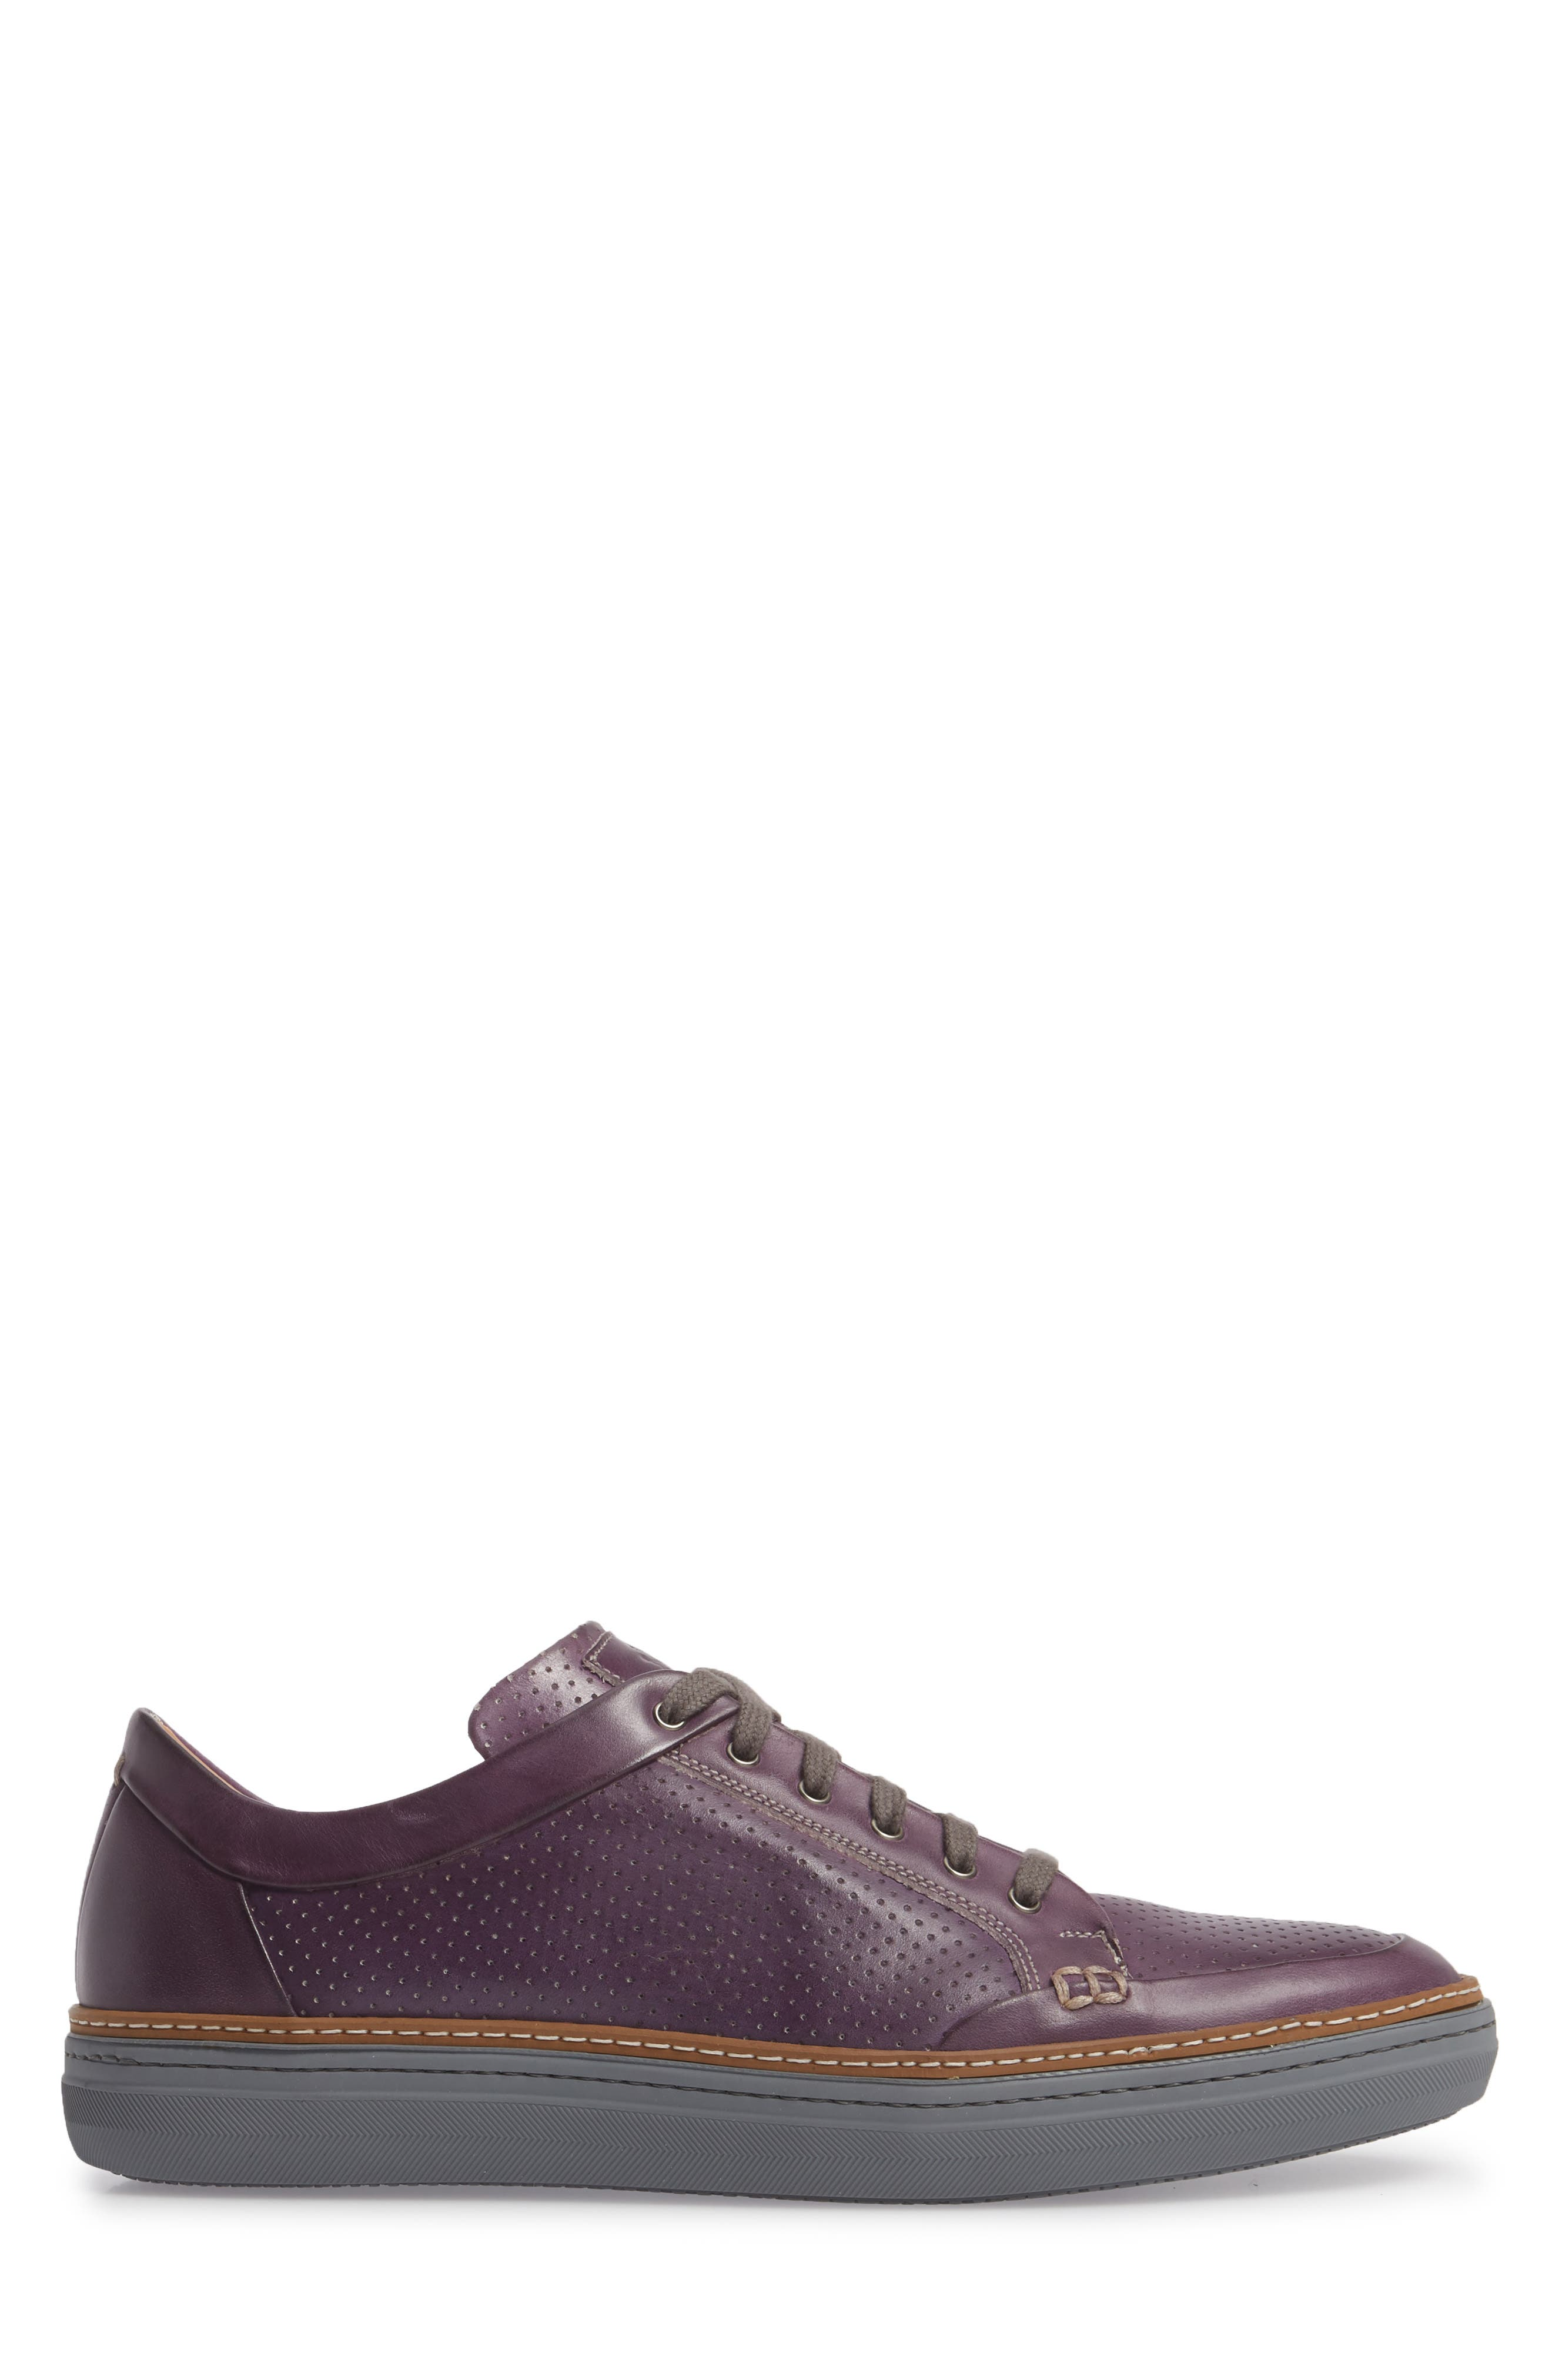 Ceres Perforated Low Top Sneaker,                             Alternate thumbnail 3, color,                             Purple Leather